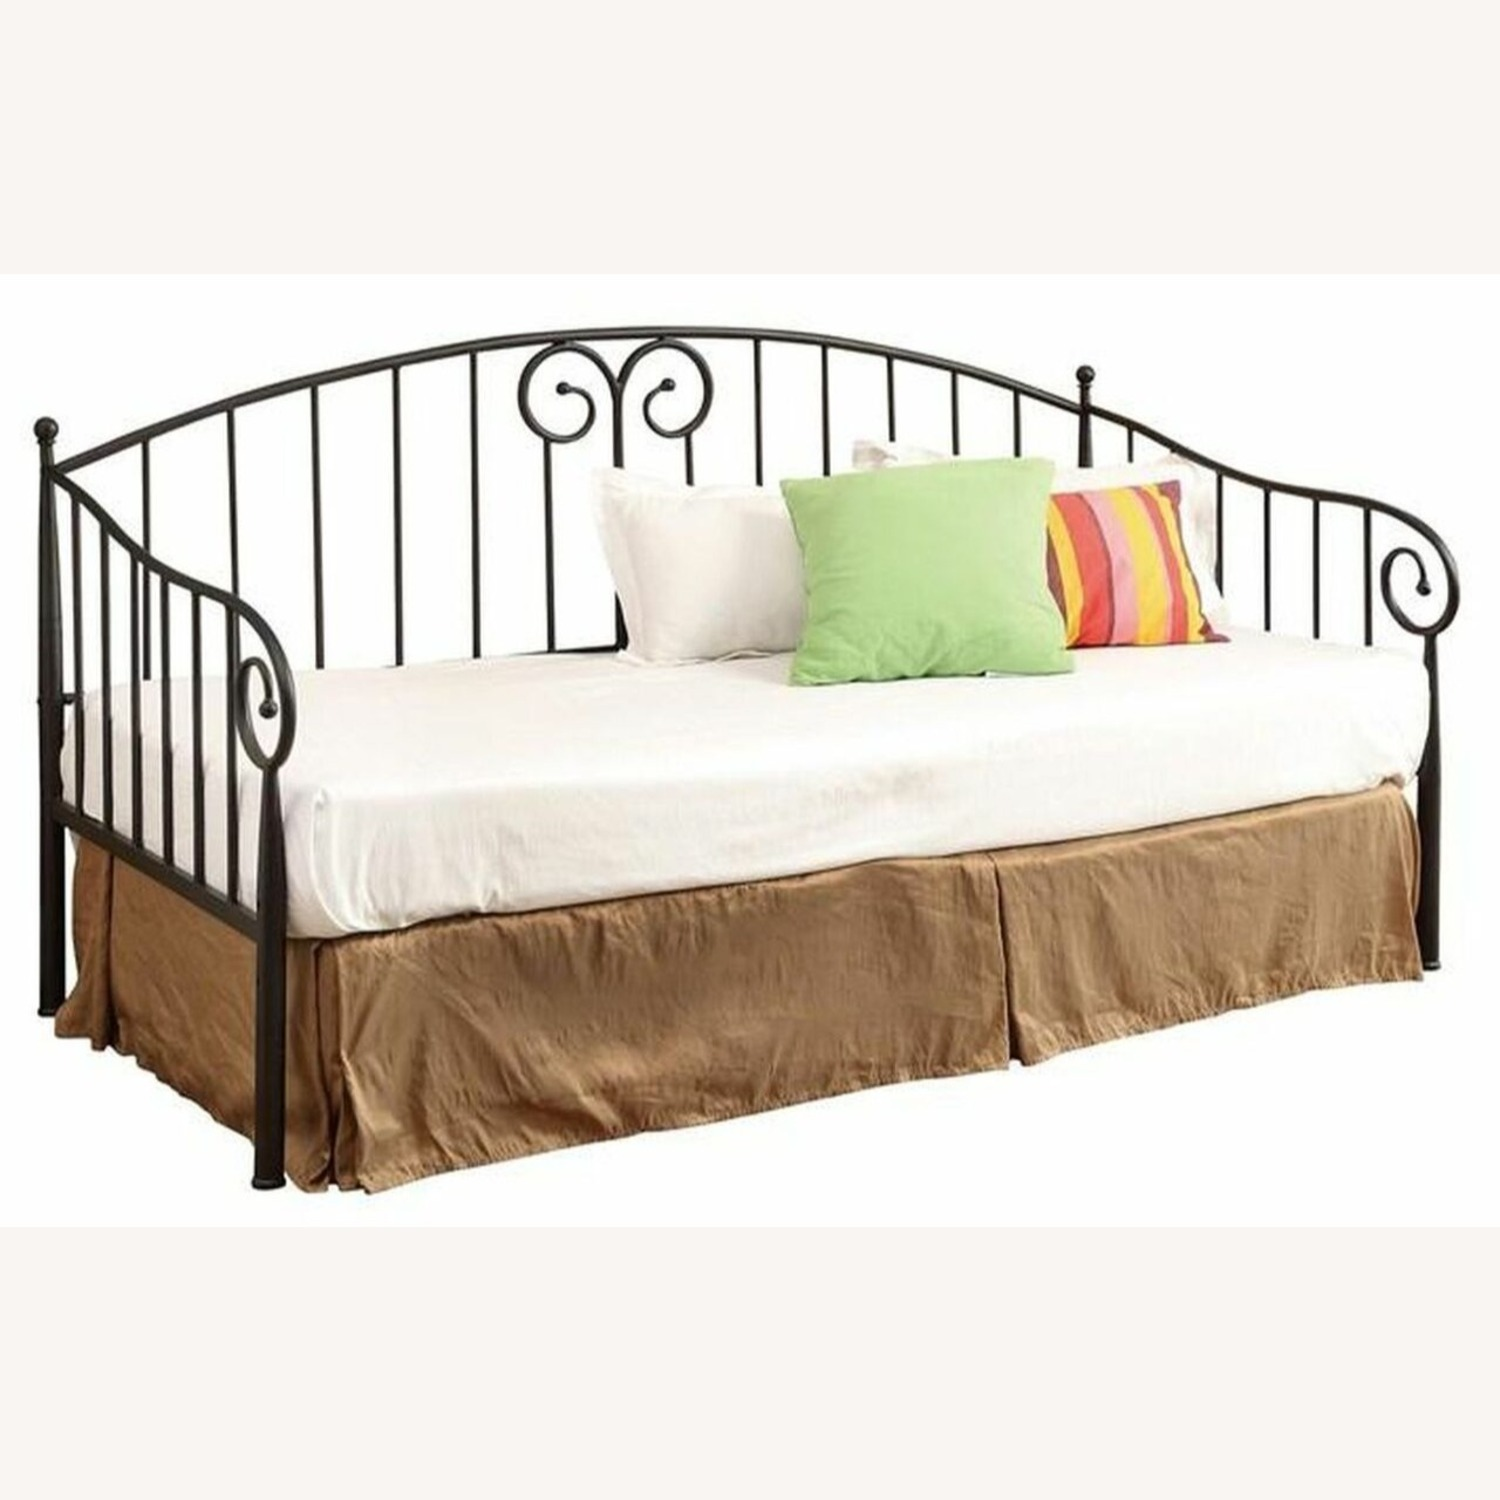 Twin Daybed In Black Finish W/ Sloped Rail Design - image-1